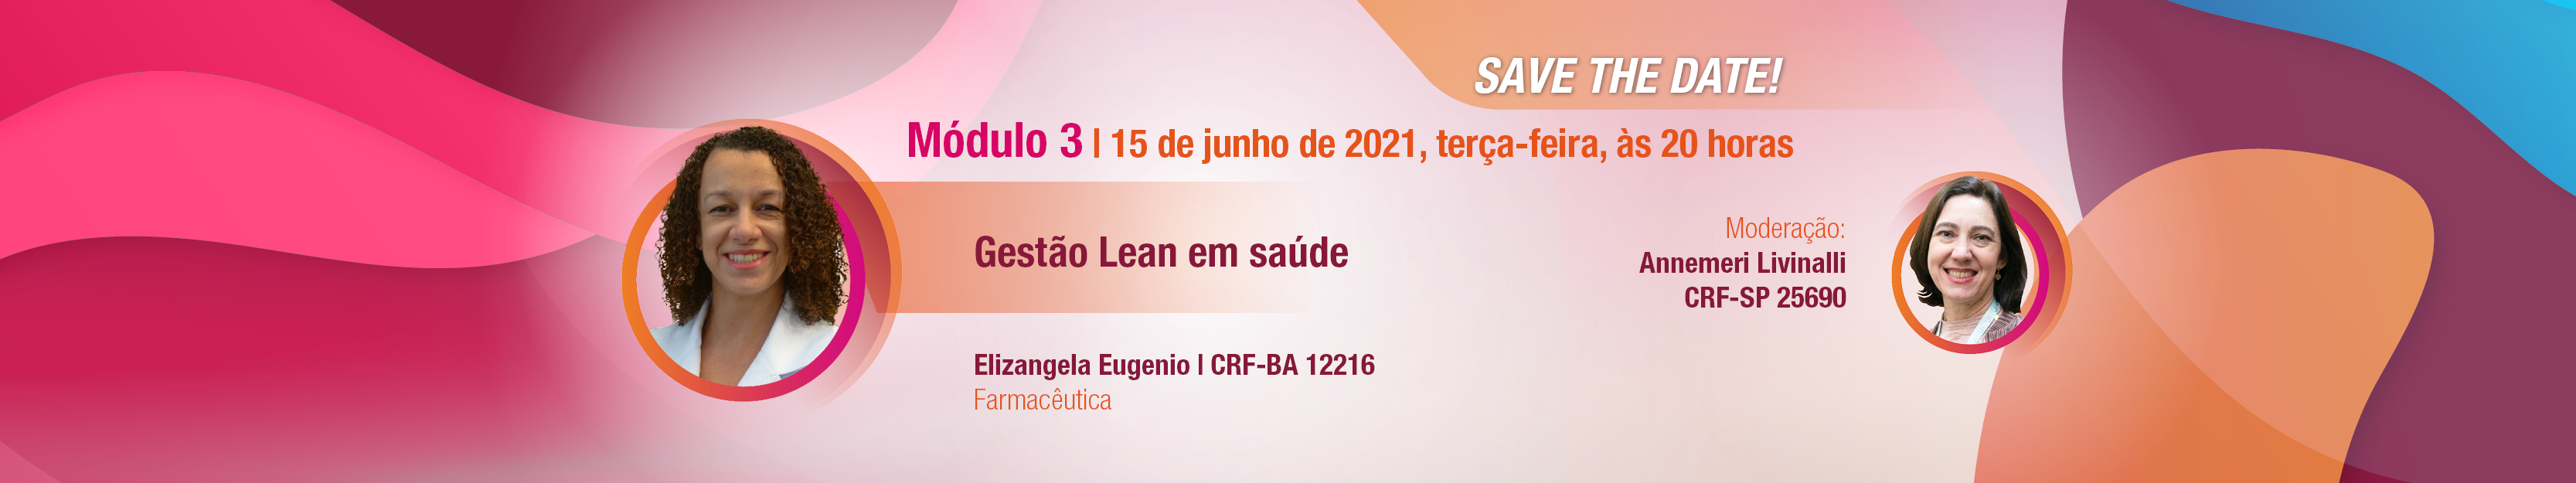 VF2021-banners aulas5